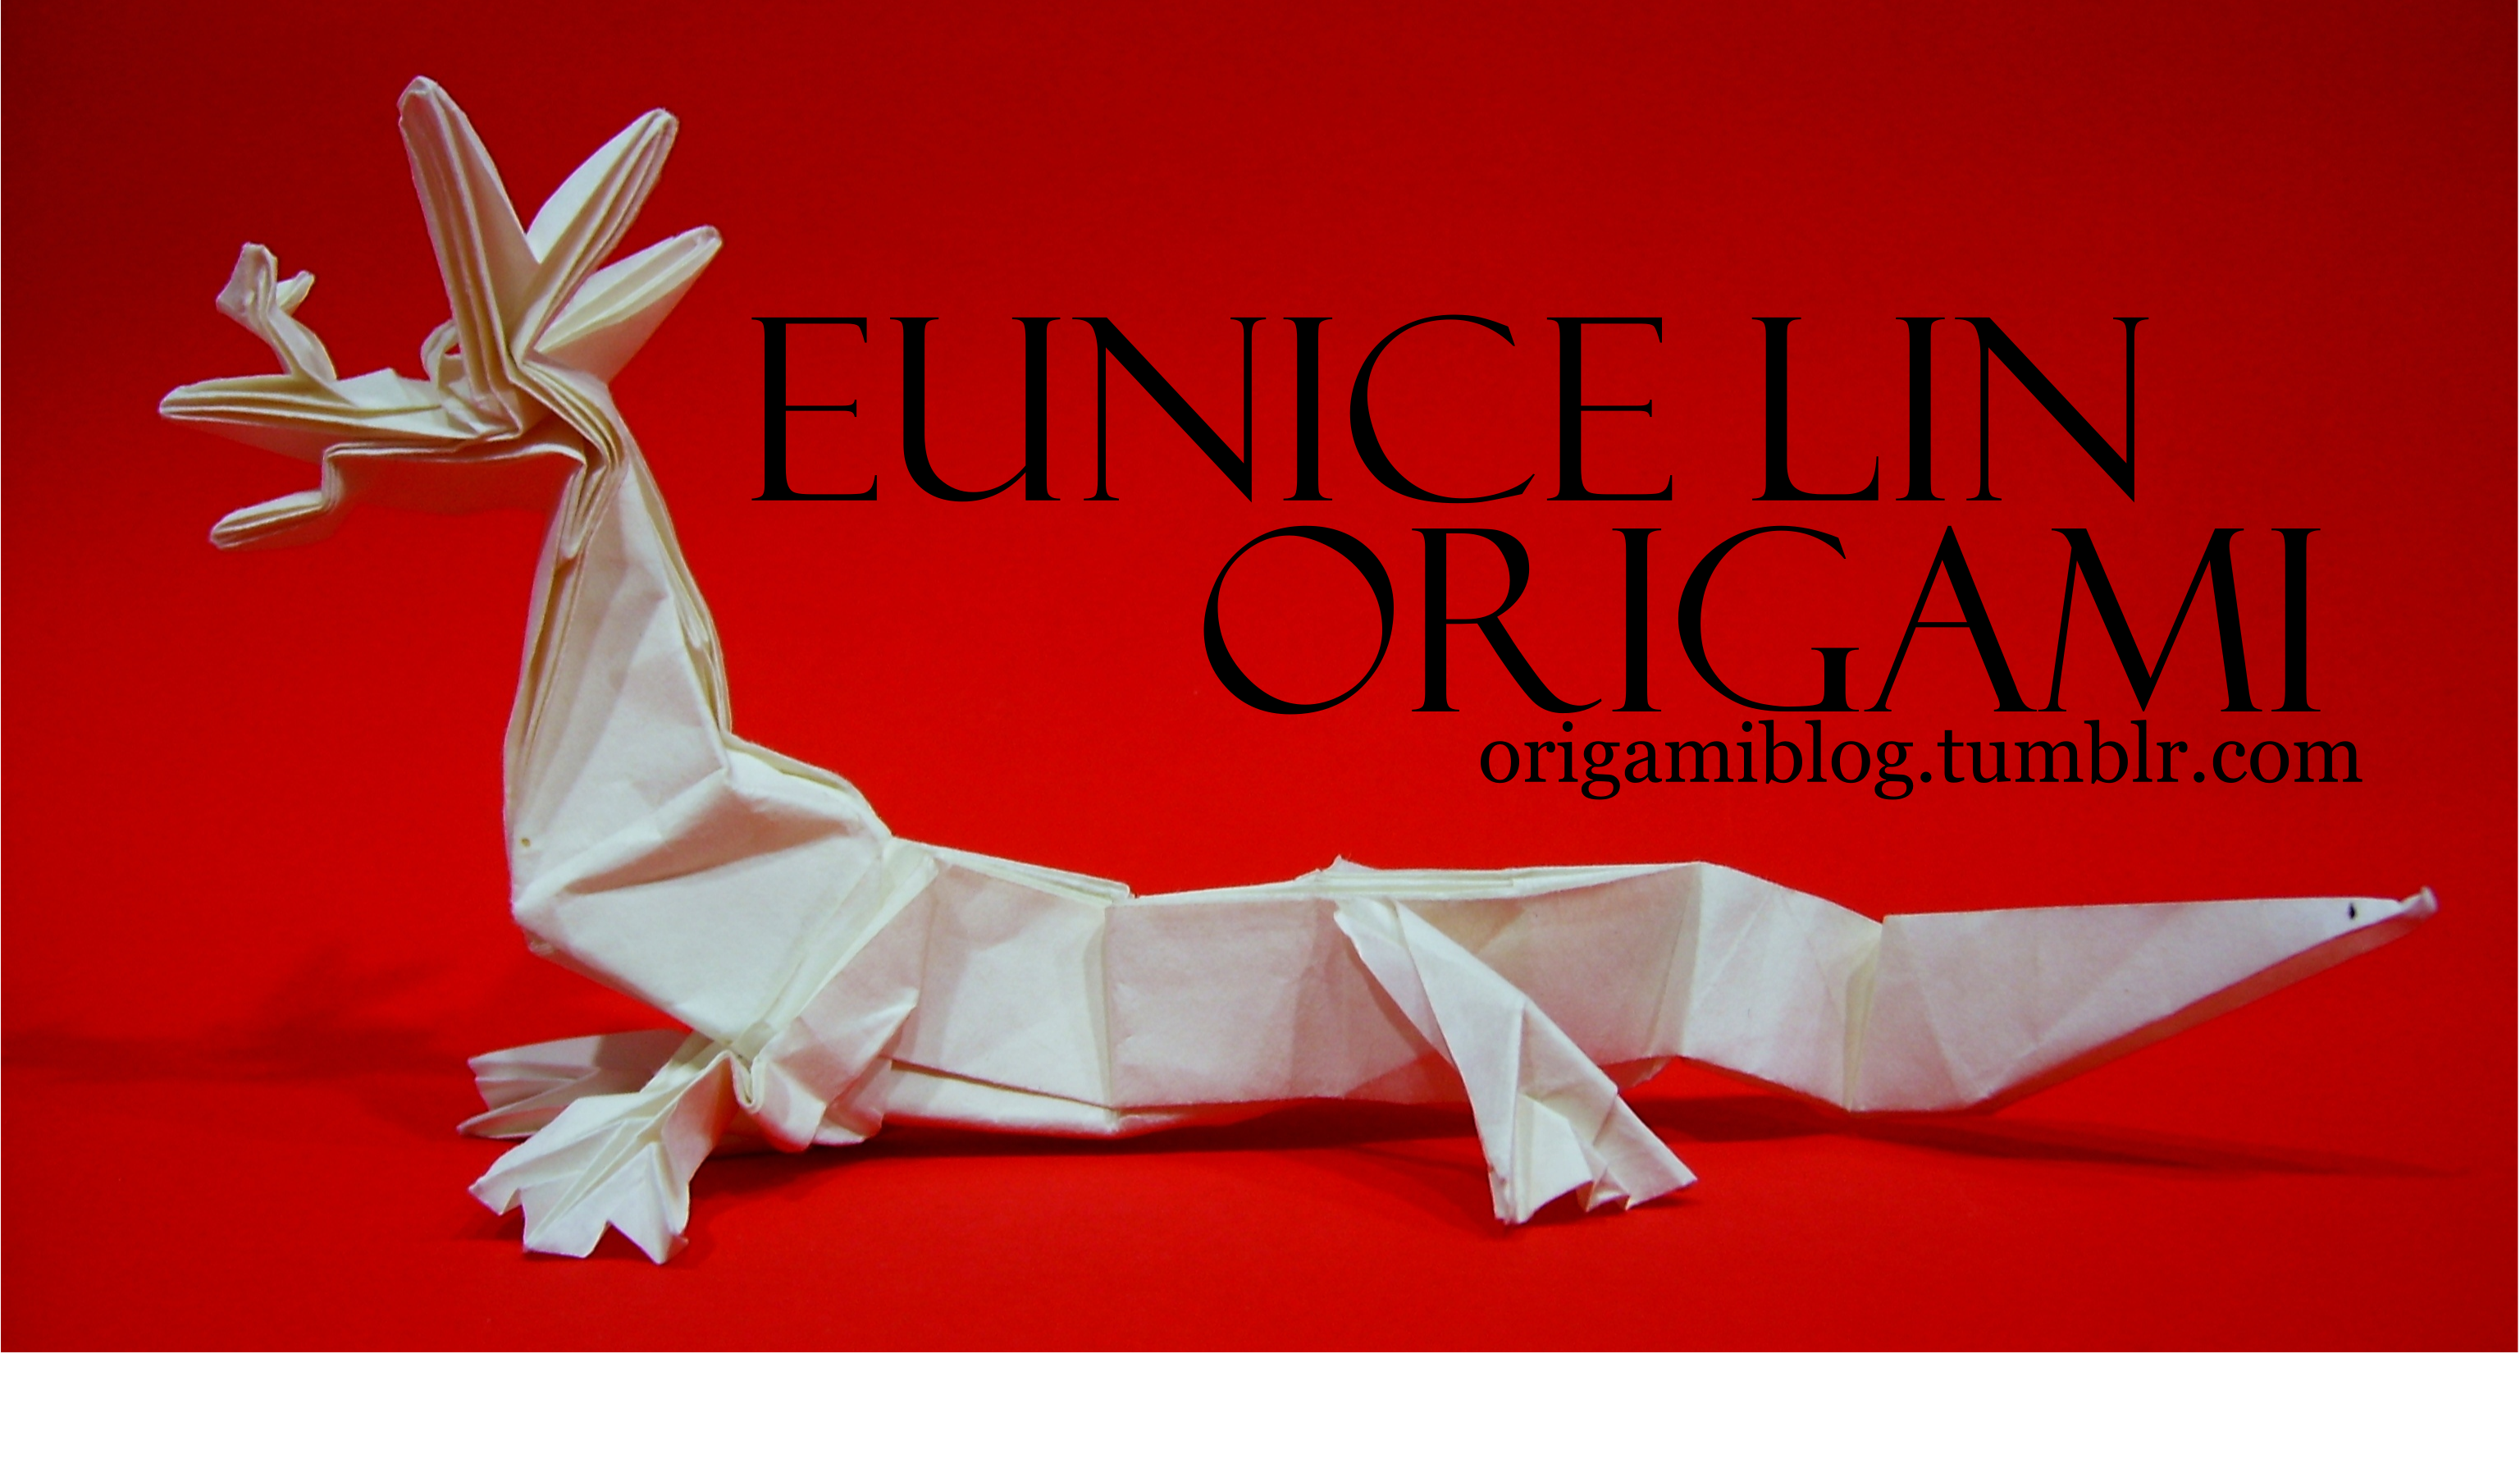 Origami Blog Cute Mouse Diagram Banner